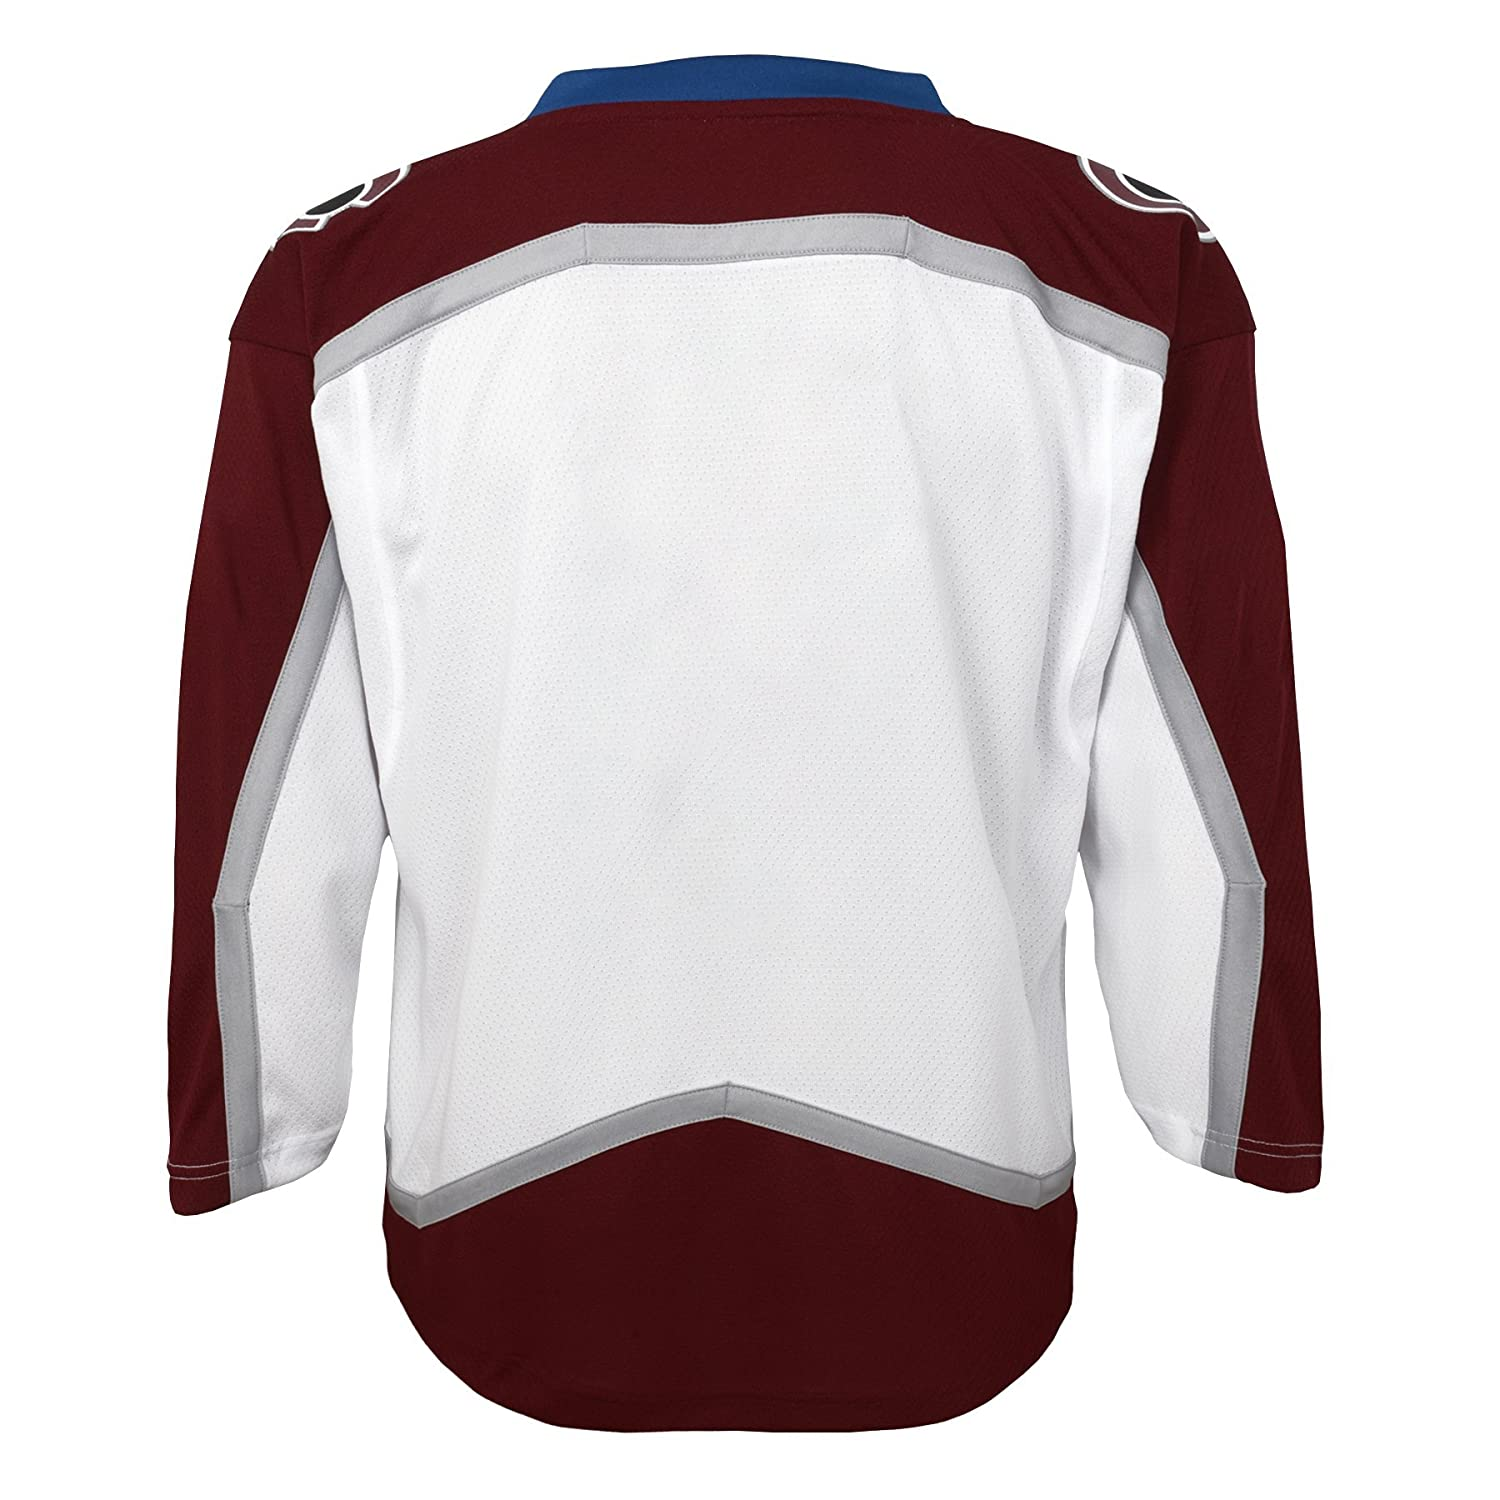 Youth Small//Medium White NHL Colorado Avalanche Youth Outerstuff Replica Jersey-Away 6-10